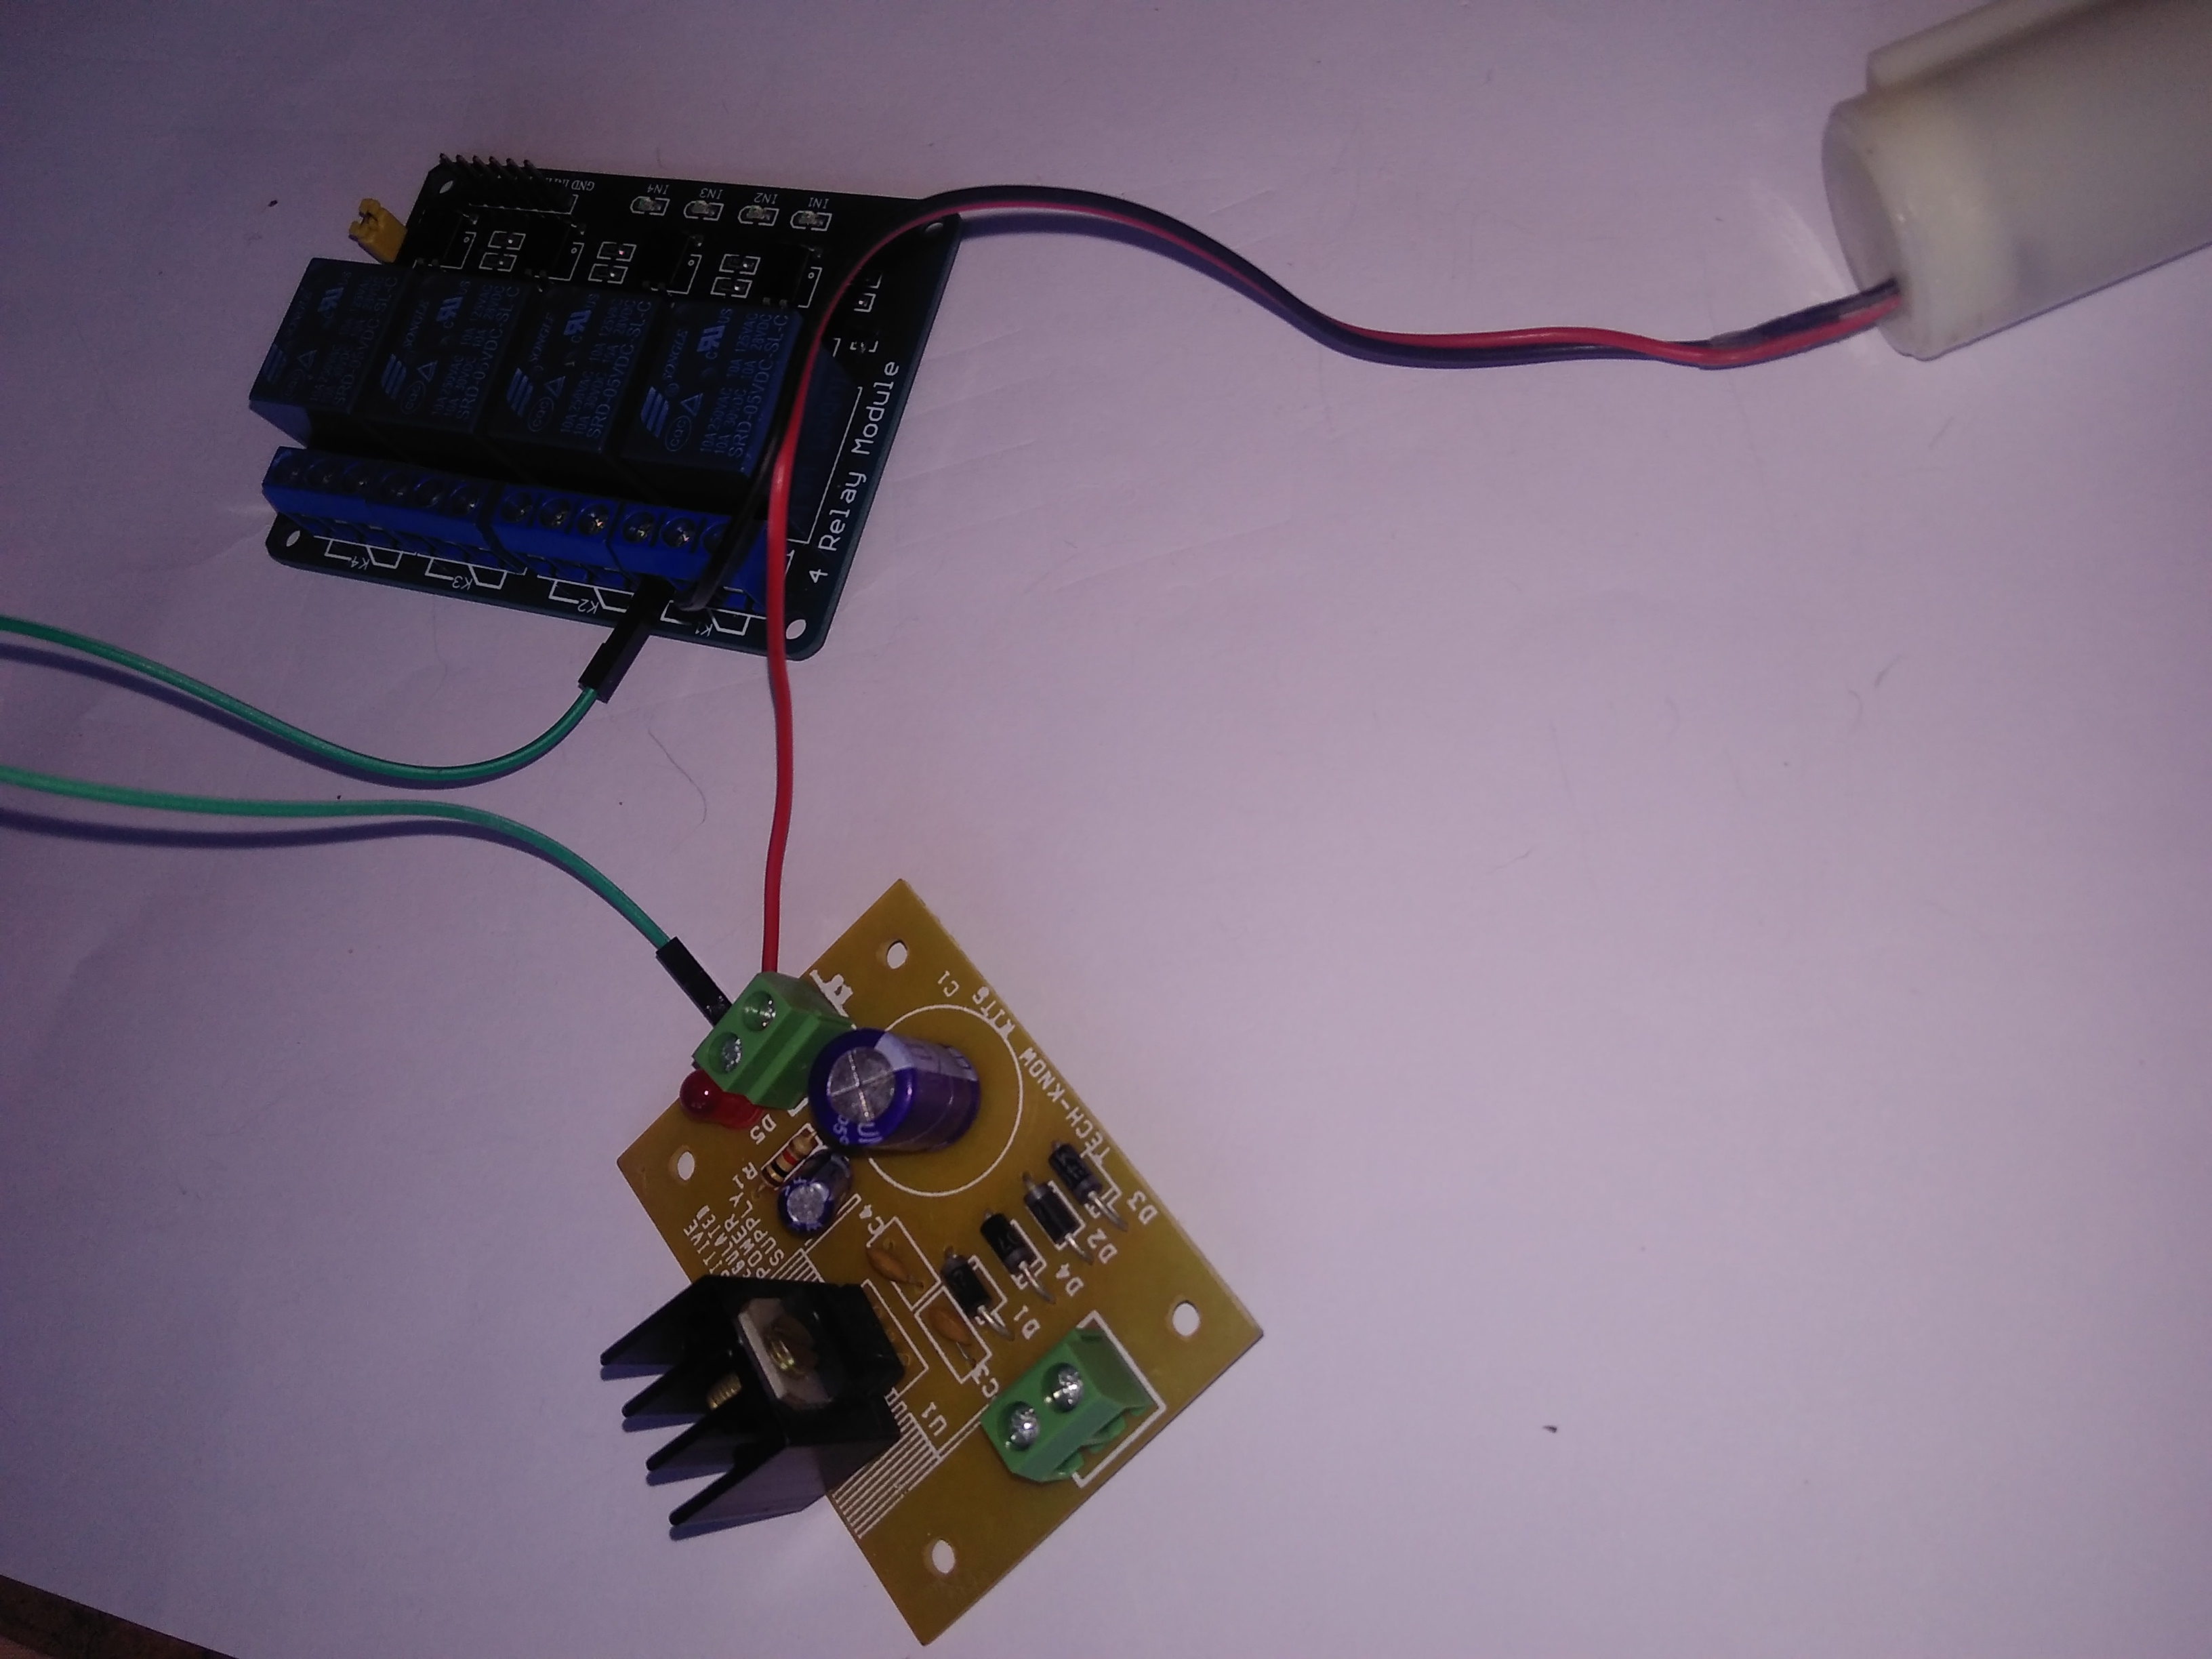 Picture of Connection of Relay Board and 12v Submersible Pump